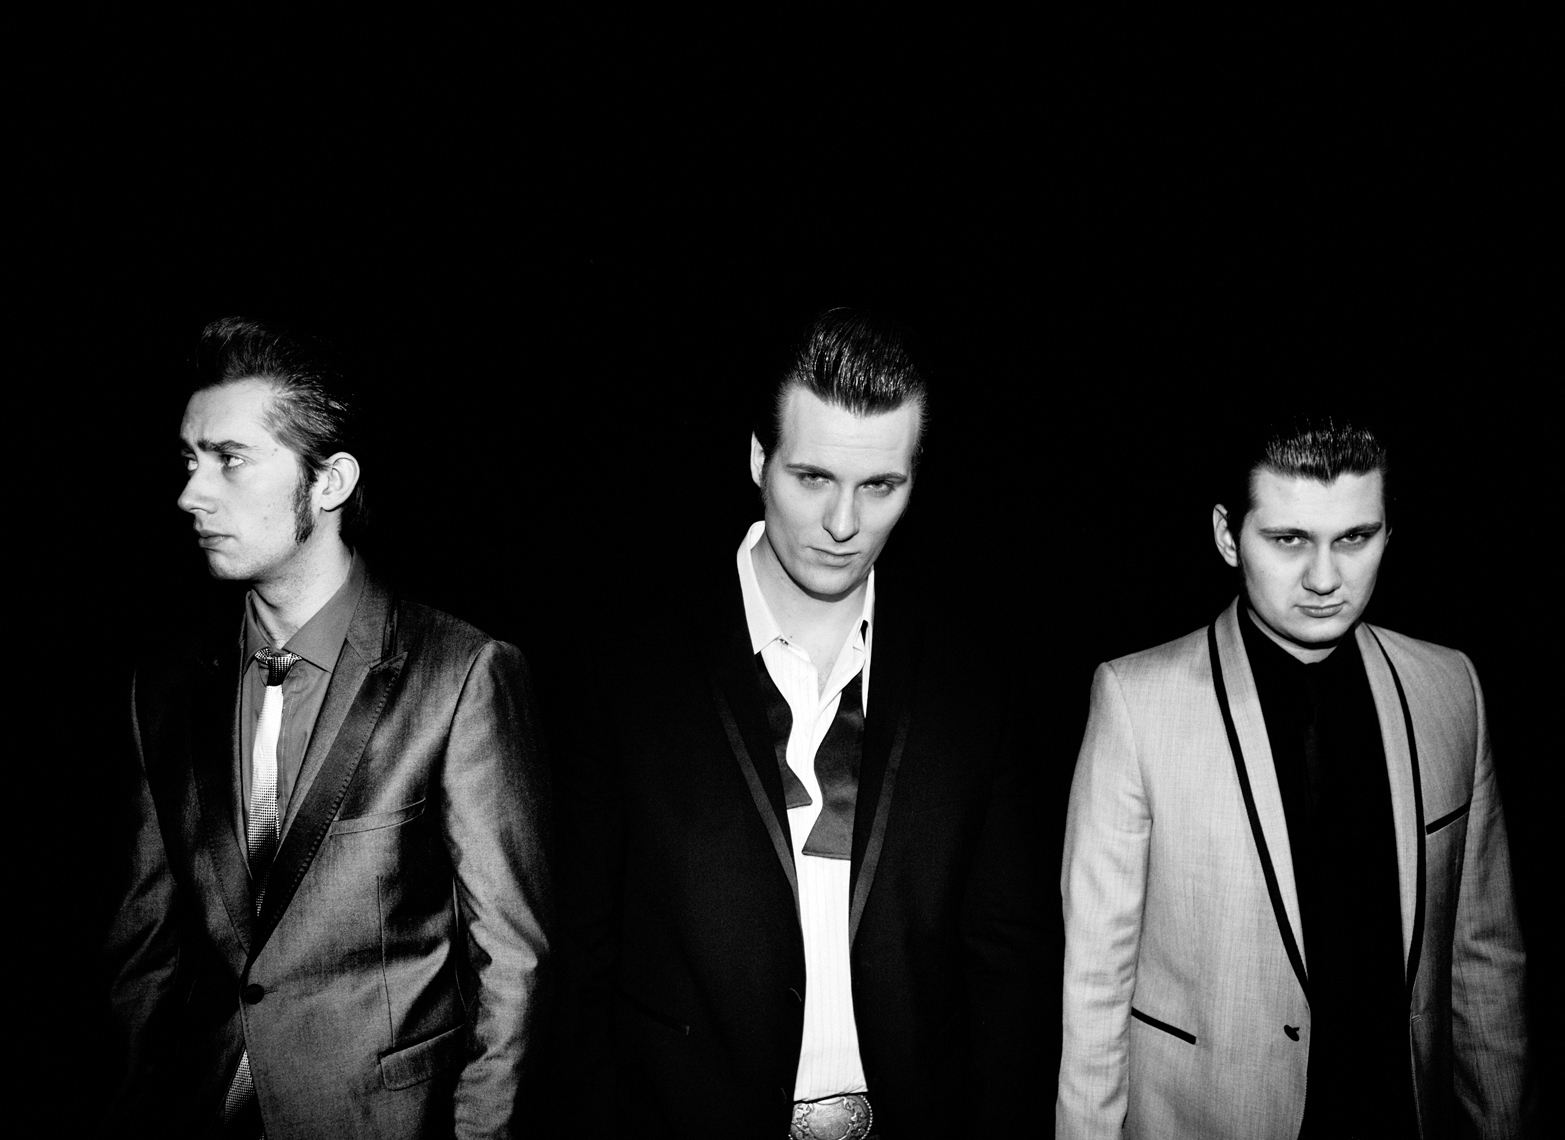 The Baseballs // Photographer: Aki-Pekka Sinikoski